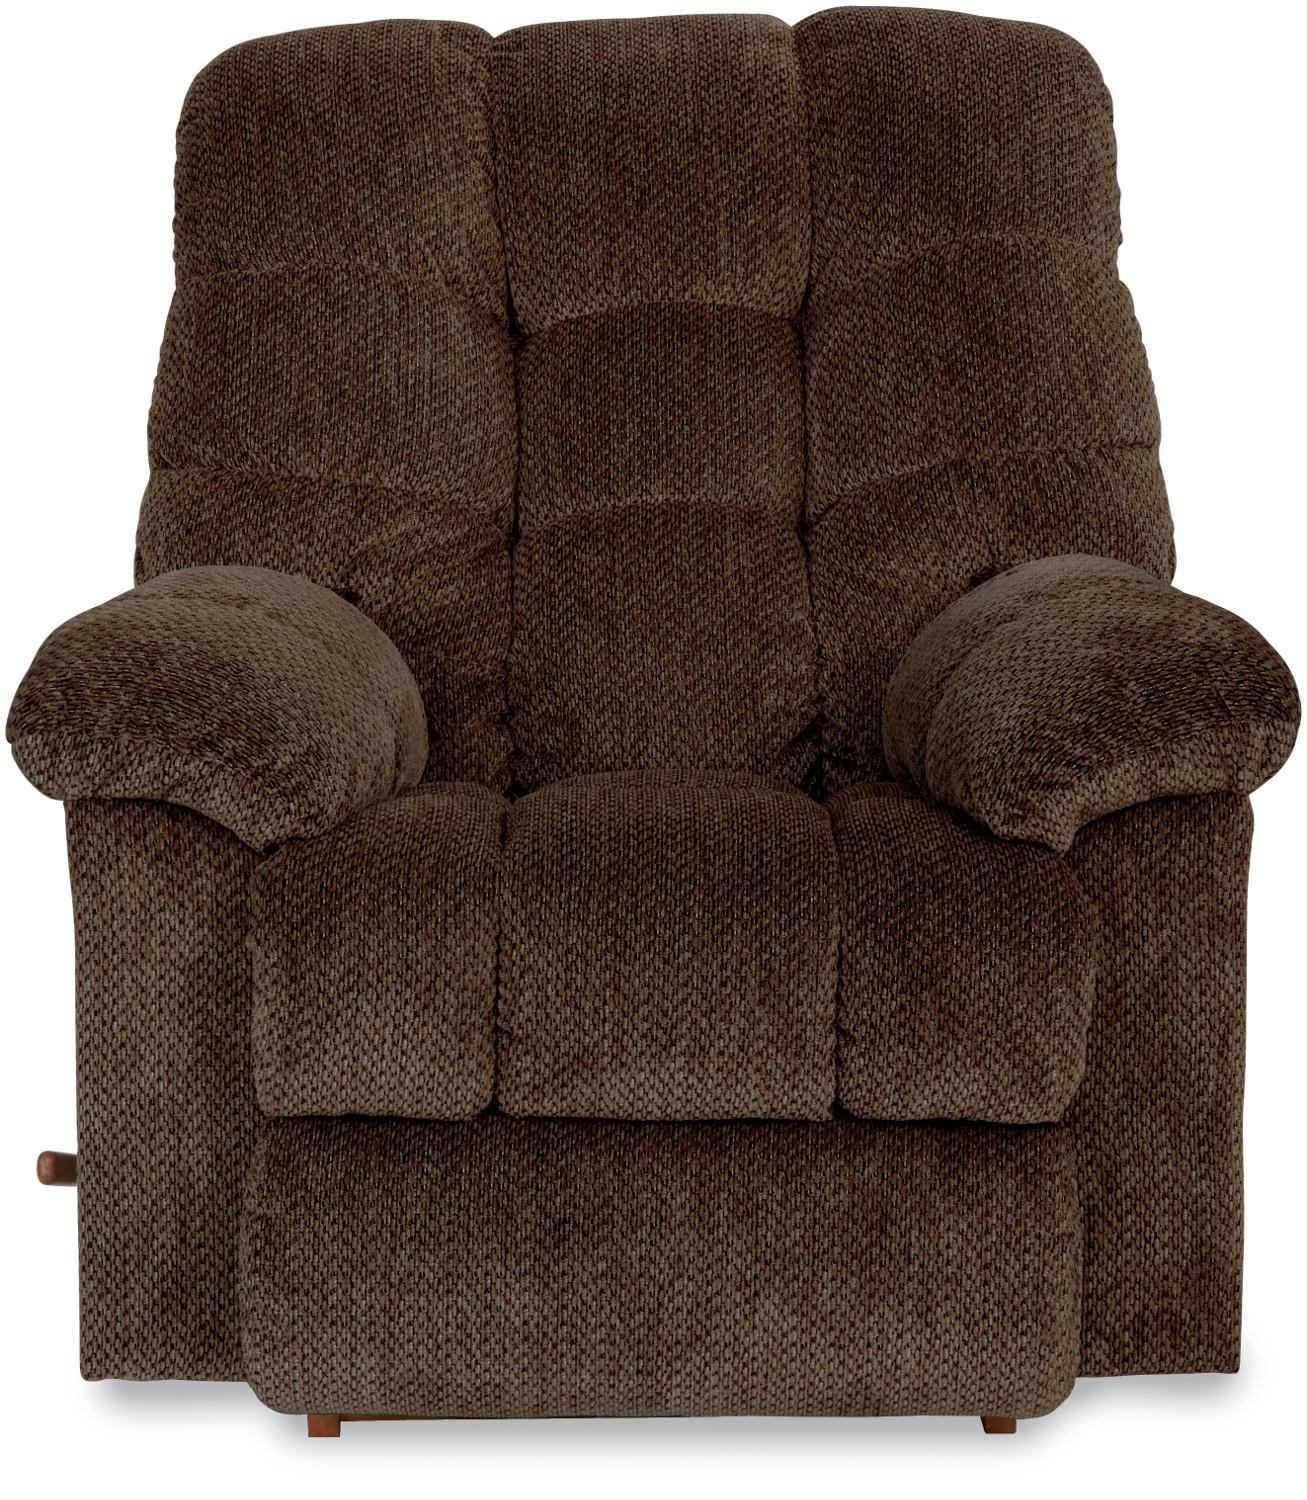 Gibson Rocking Recliner by La-Z-Boy at Lynn's Furniture & Mattress